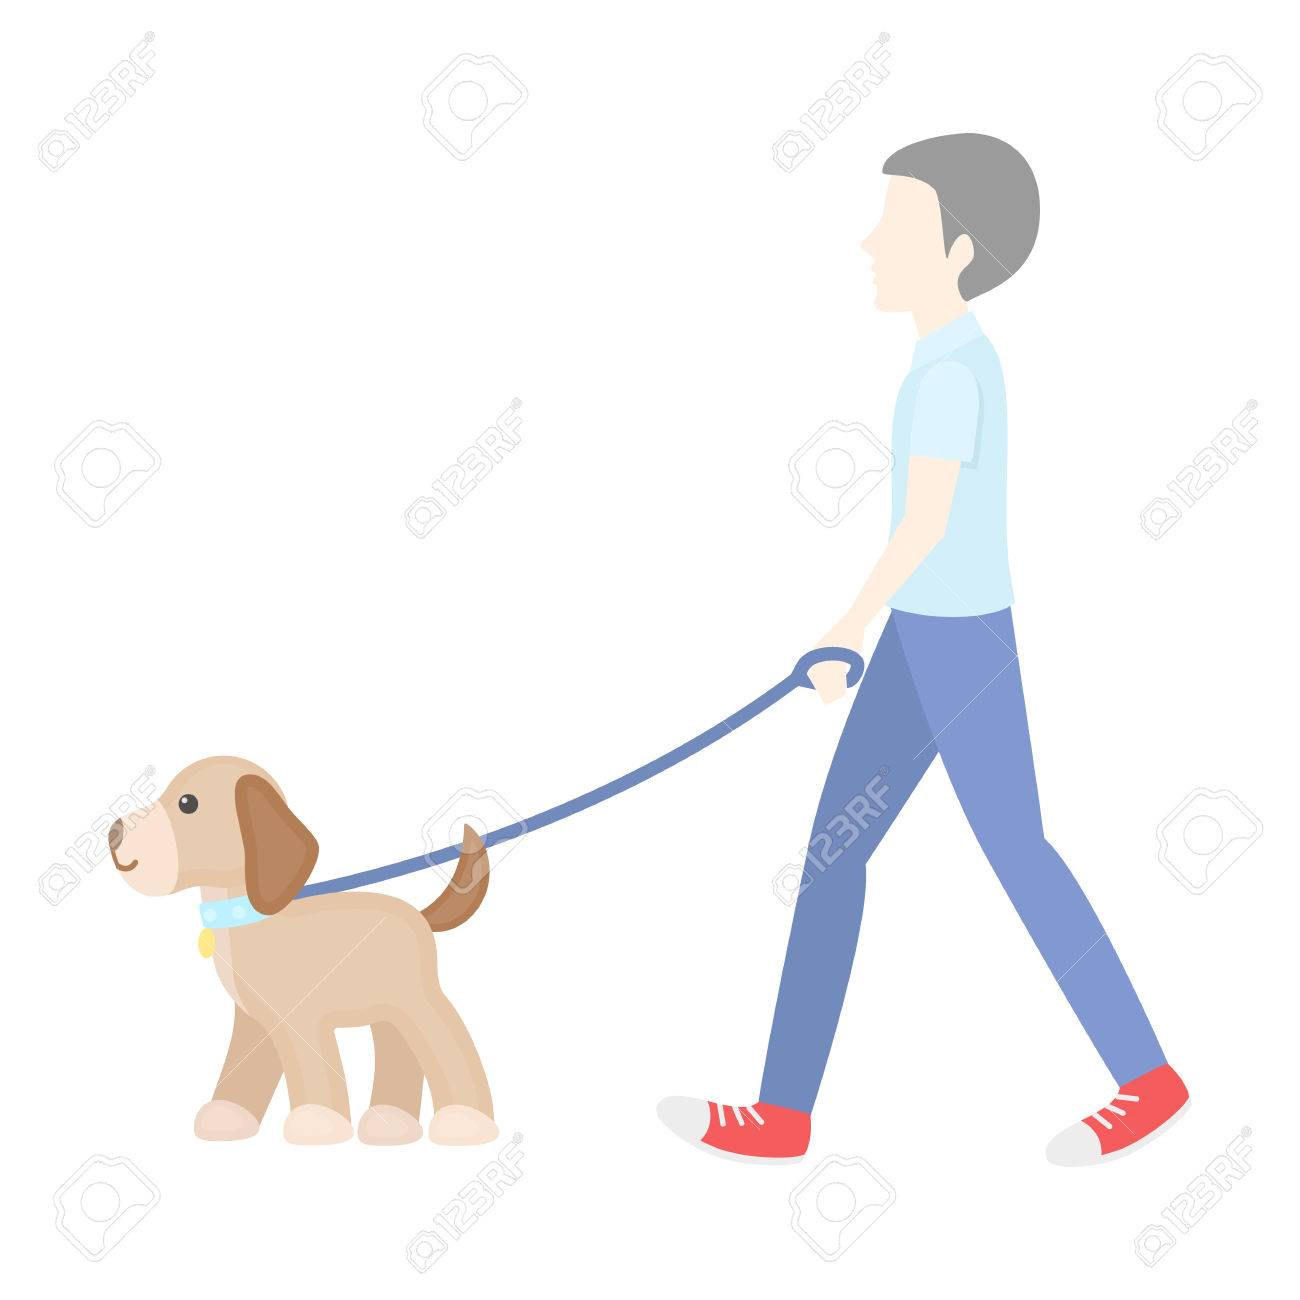 dog walk vector illustration icon in cartoon design royalty free cliparts vectors and stock illustration image 59920483 dog walk vector illustration icon in cartoon design